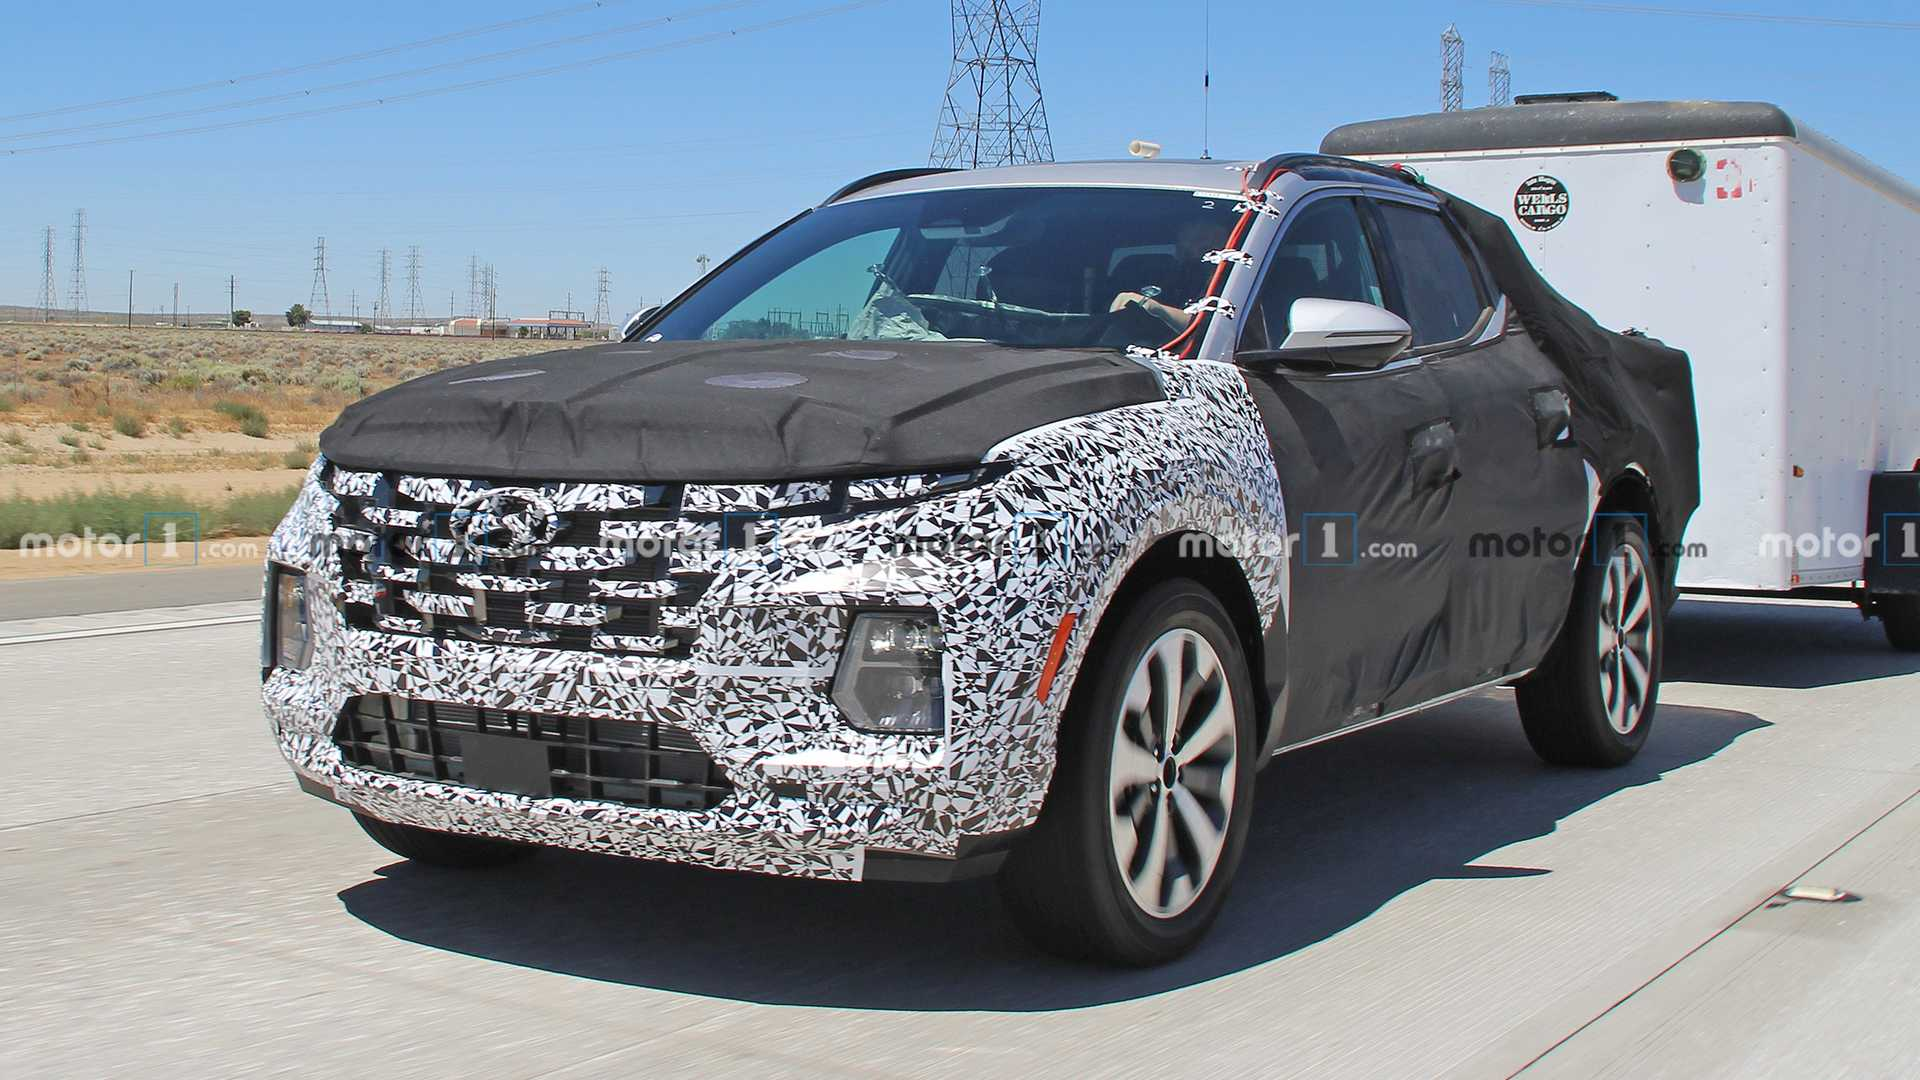 The fourth-gen Hyundai Tucson, which only debuted yesterday, will lend its platform and tech to a new pickup model. According to Hyundai Motor Group VP Lorenz Glaab, the truck is already running tests.